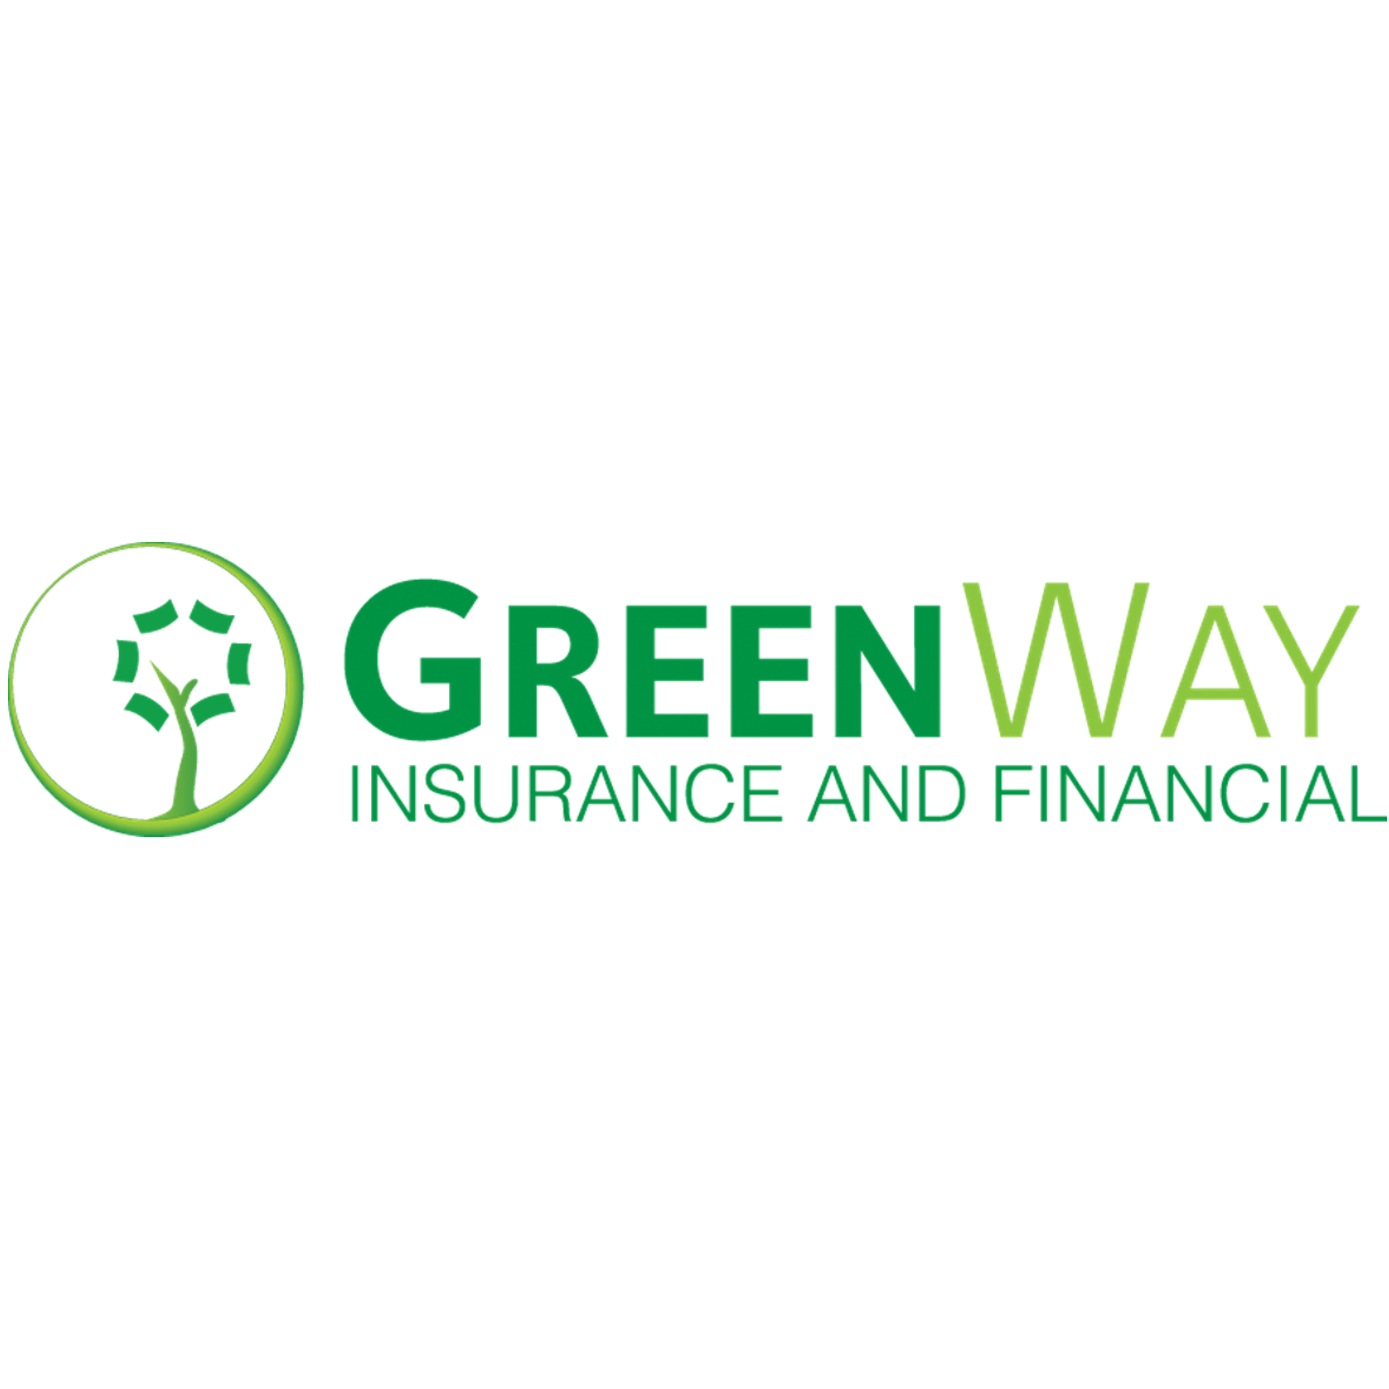 Greenway Insurance and Financial